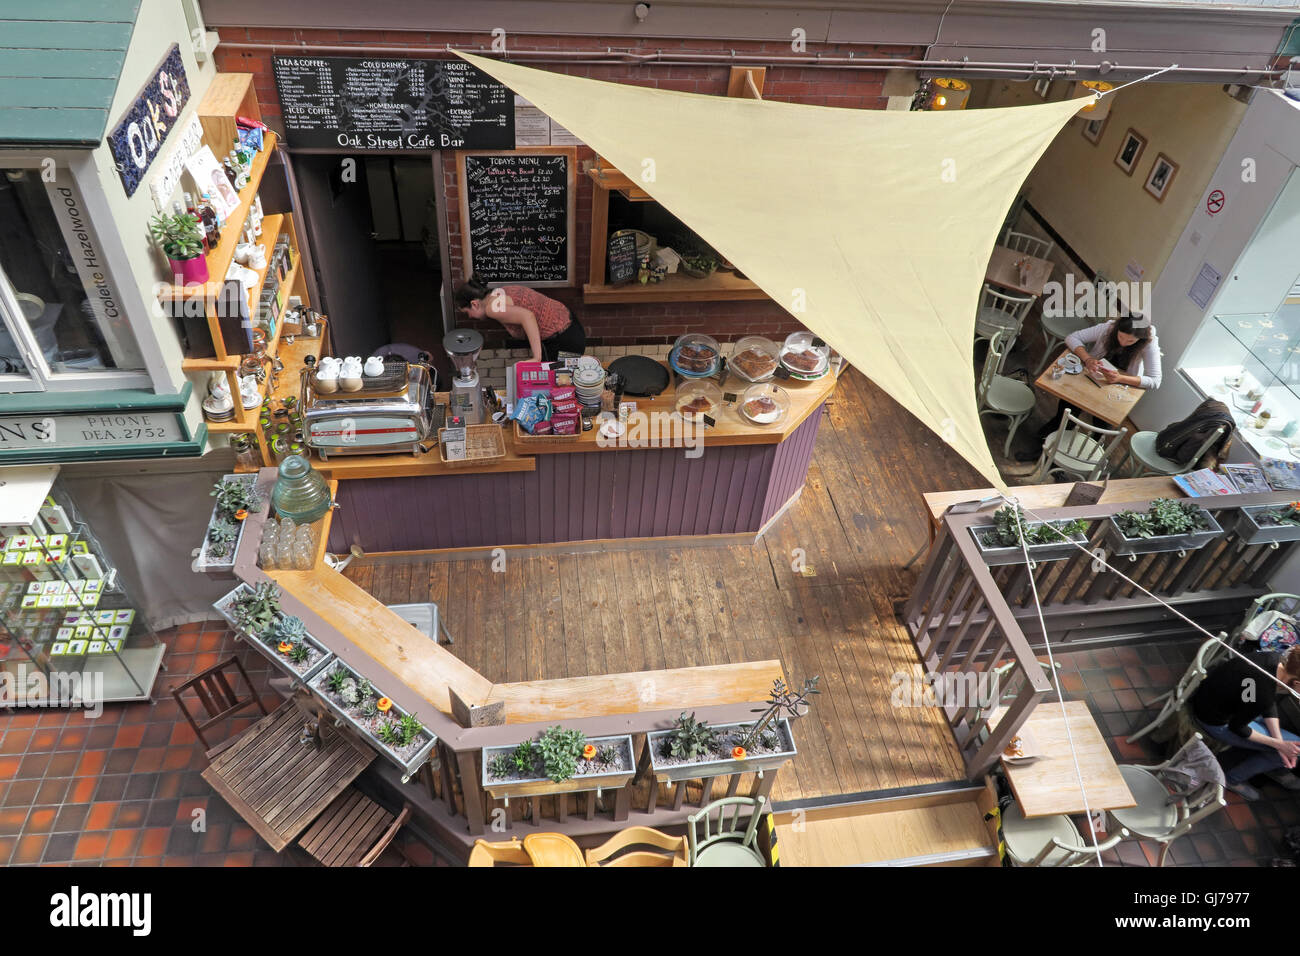 Cafe at Manchester Craft and Design Centre, 17 Oak St, Manchester, UK M4 5JD - Stock Image